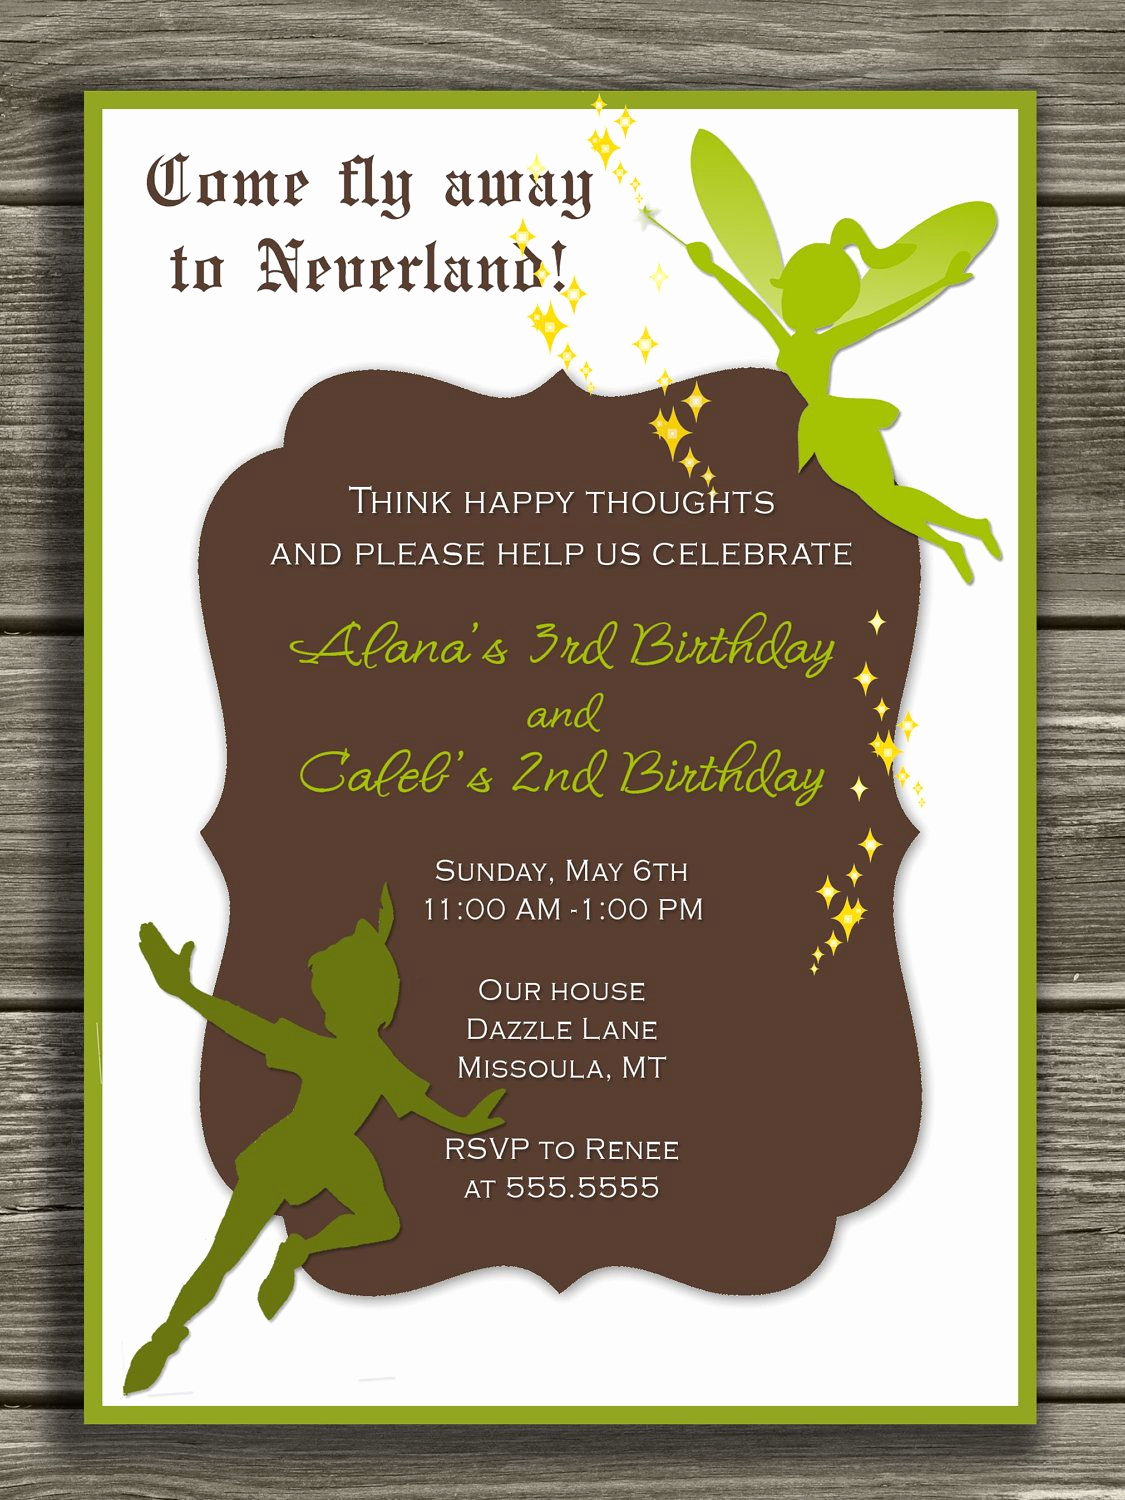 Tinkerbell Invitation Template Free Unique Peter Pan and Tinkerbell Invitation Free Thank You Card